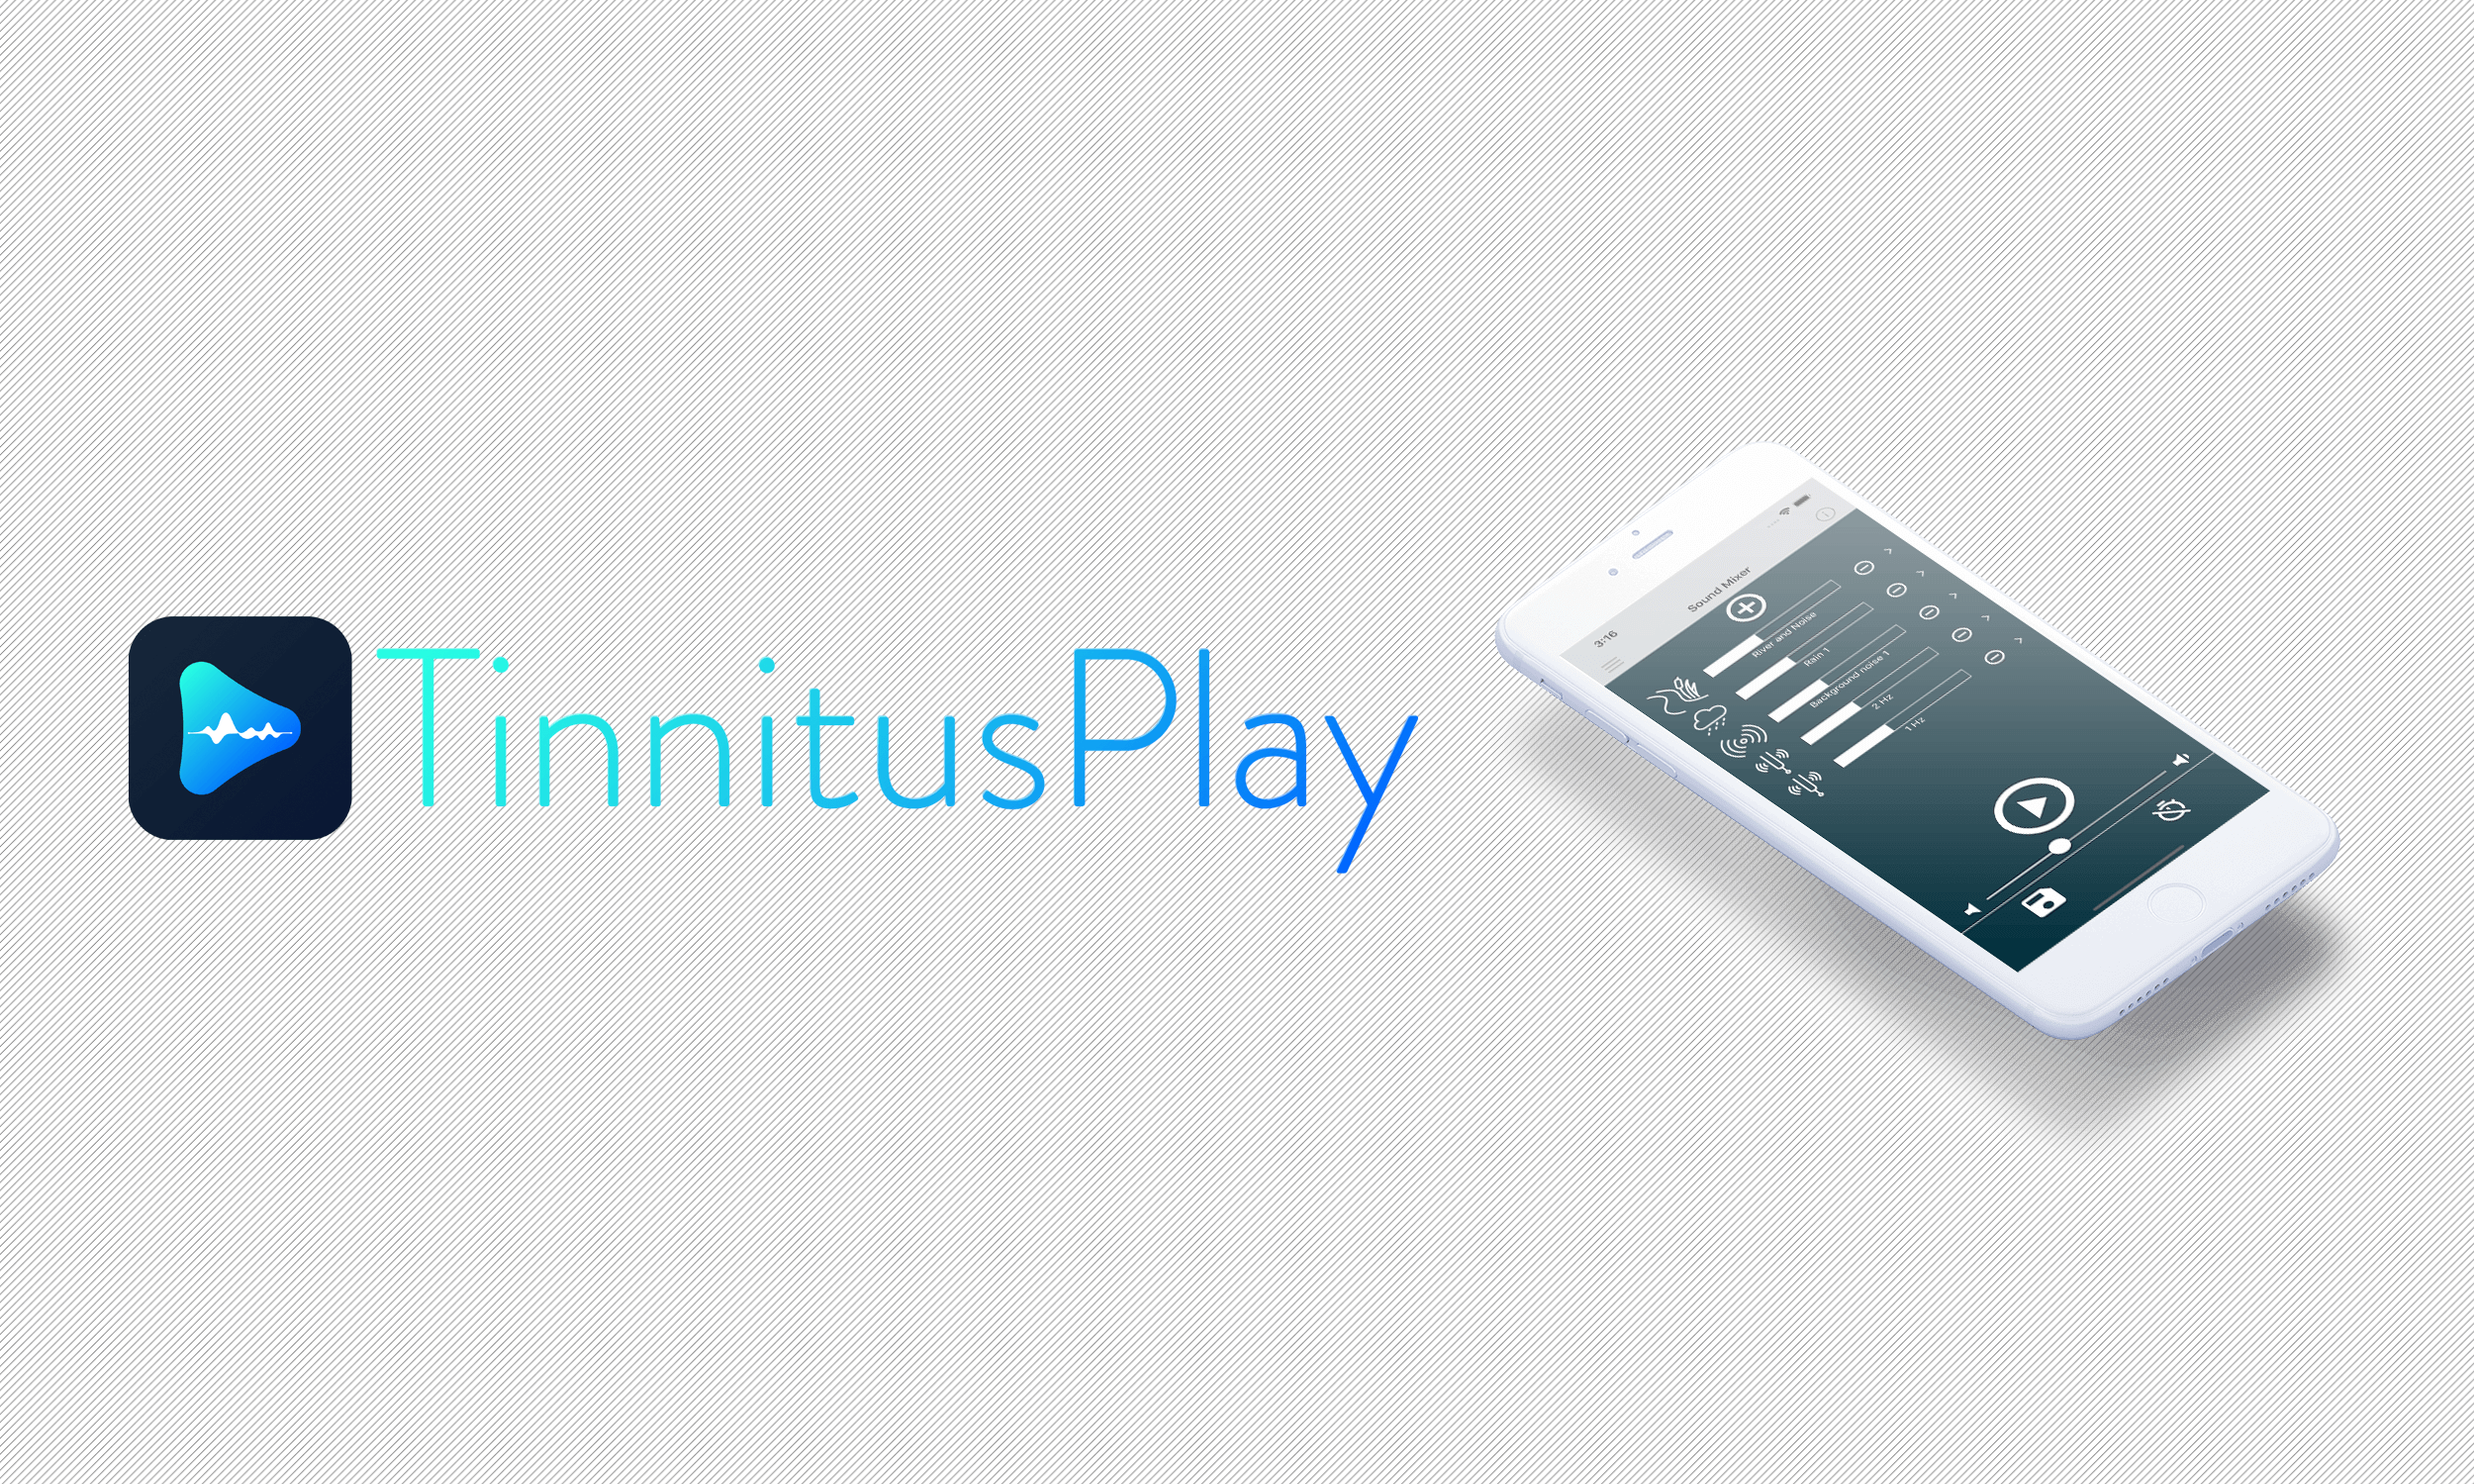 TinnitusPlay Launched!